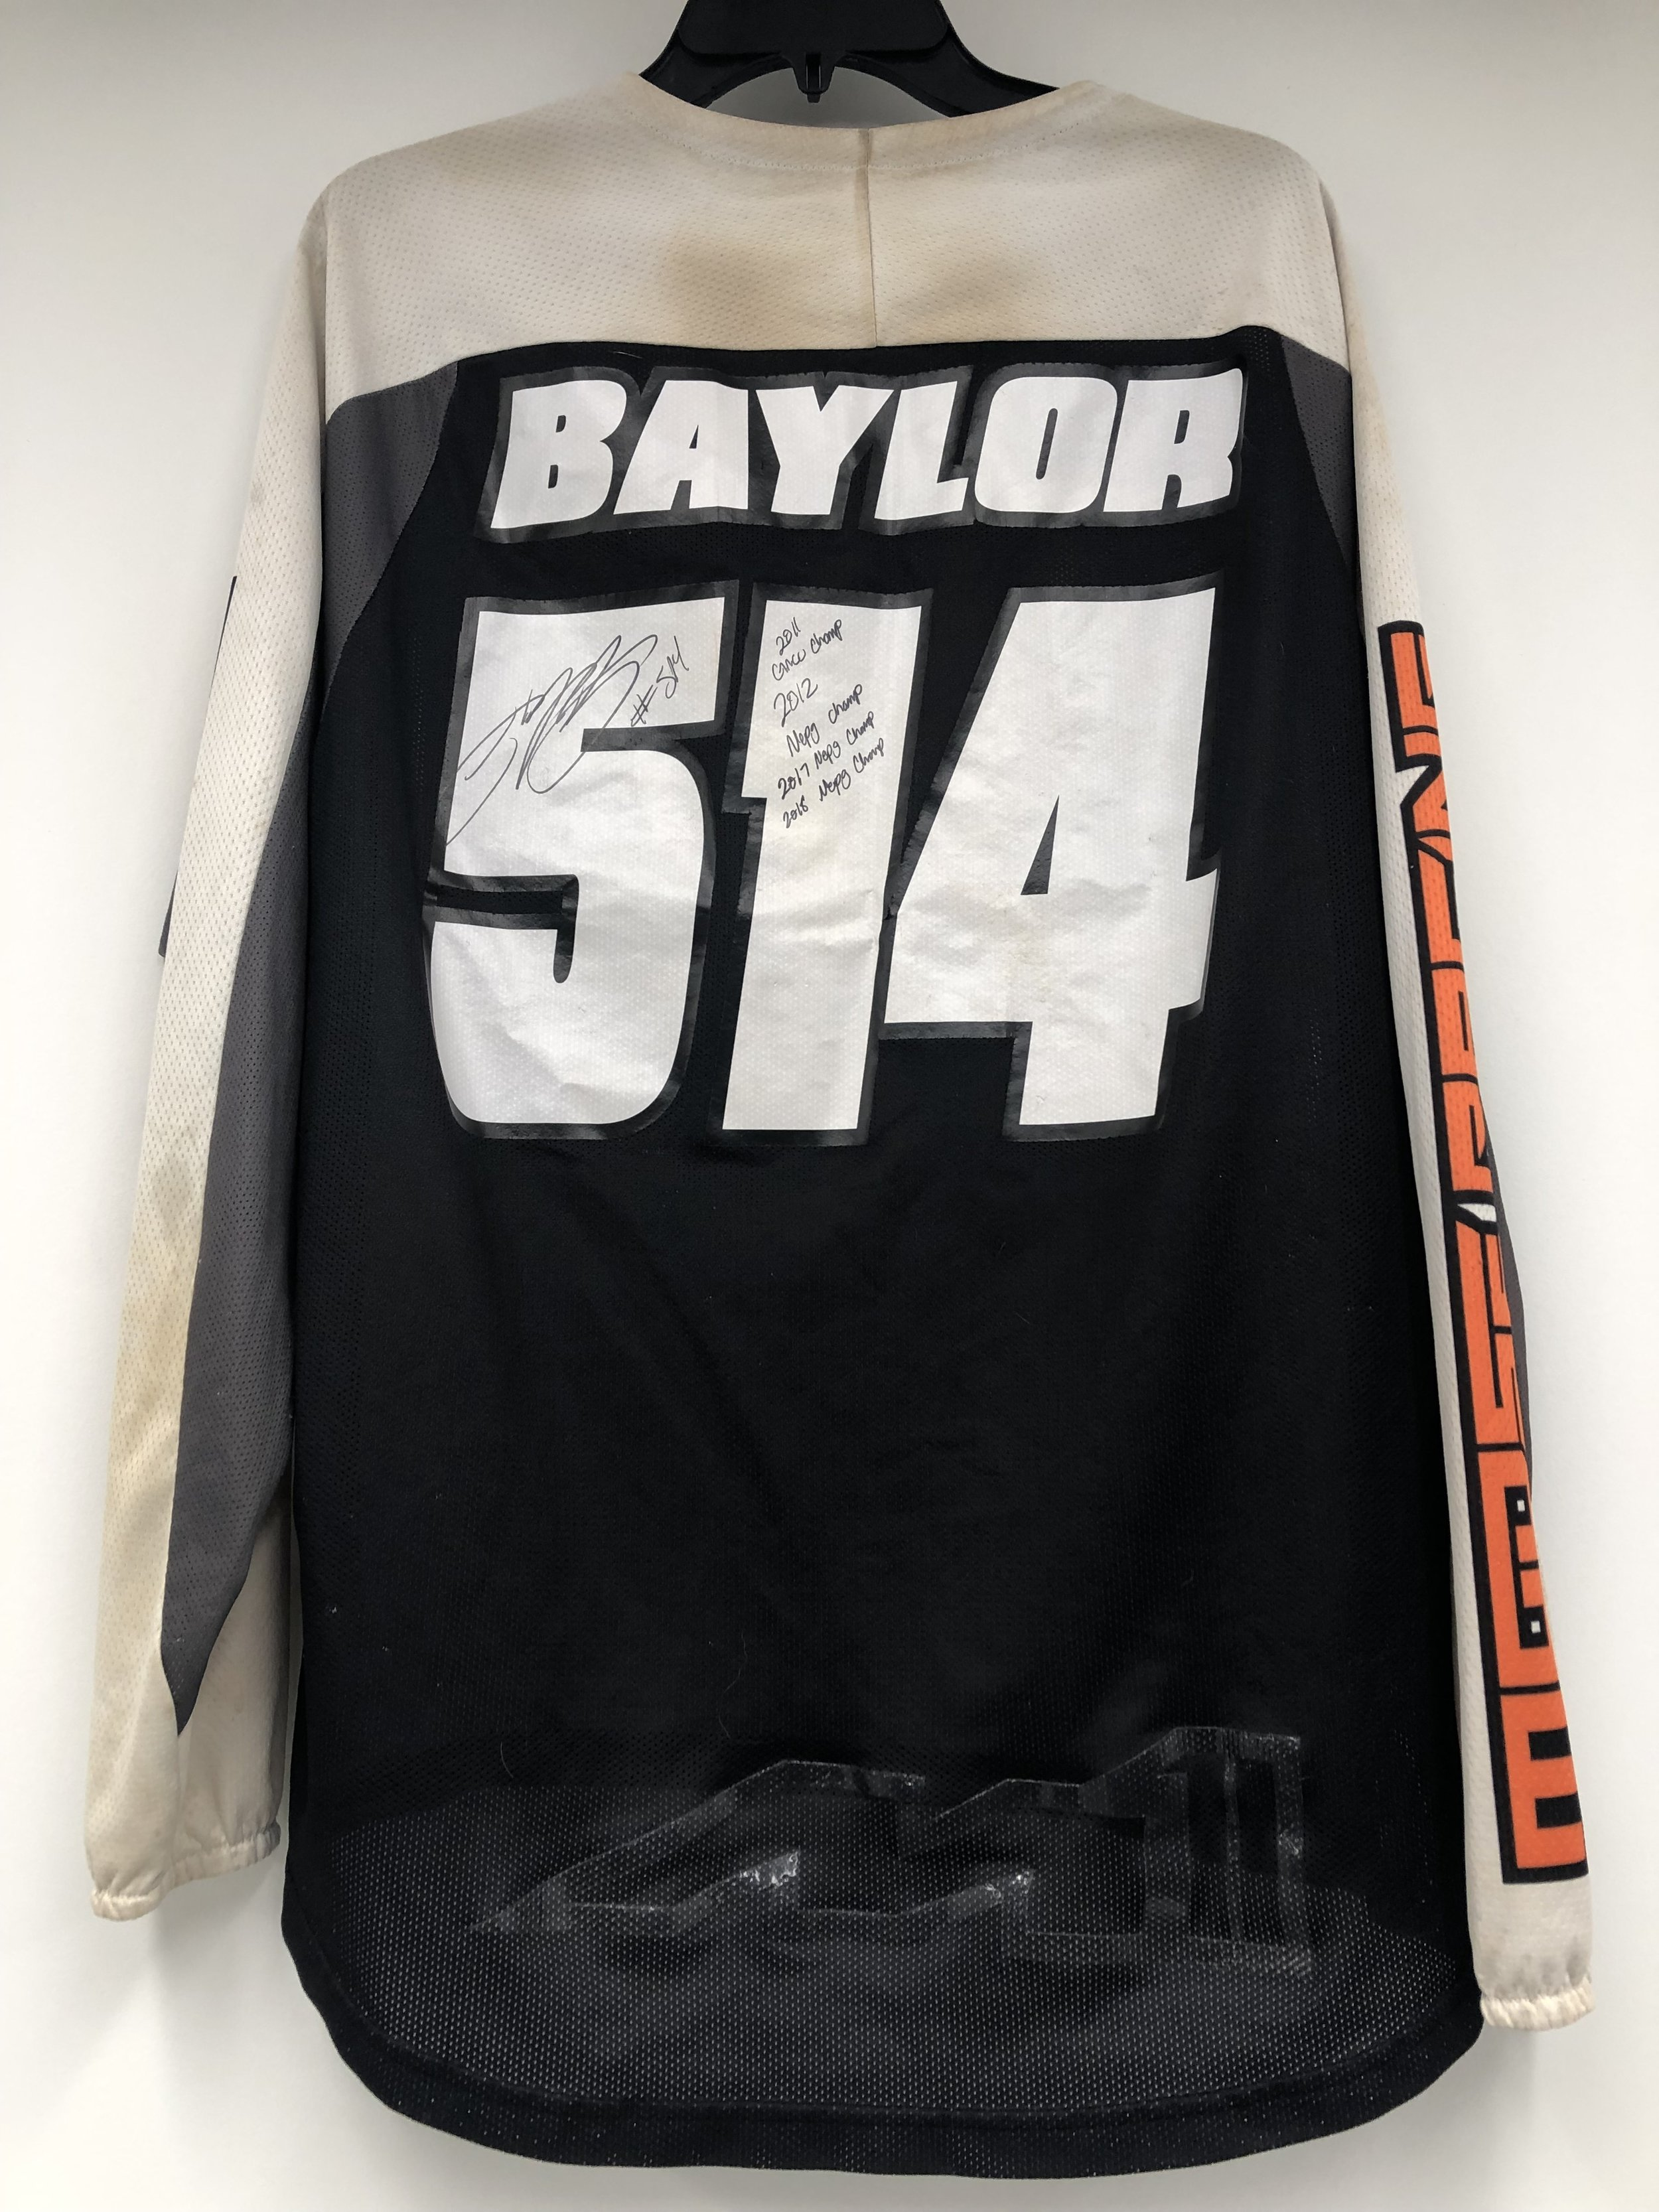 Click the image to bid on Steward Baylor Jersey